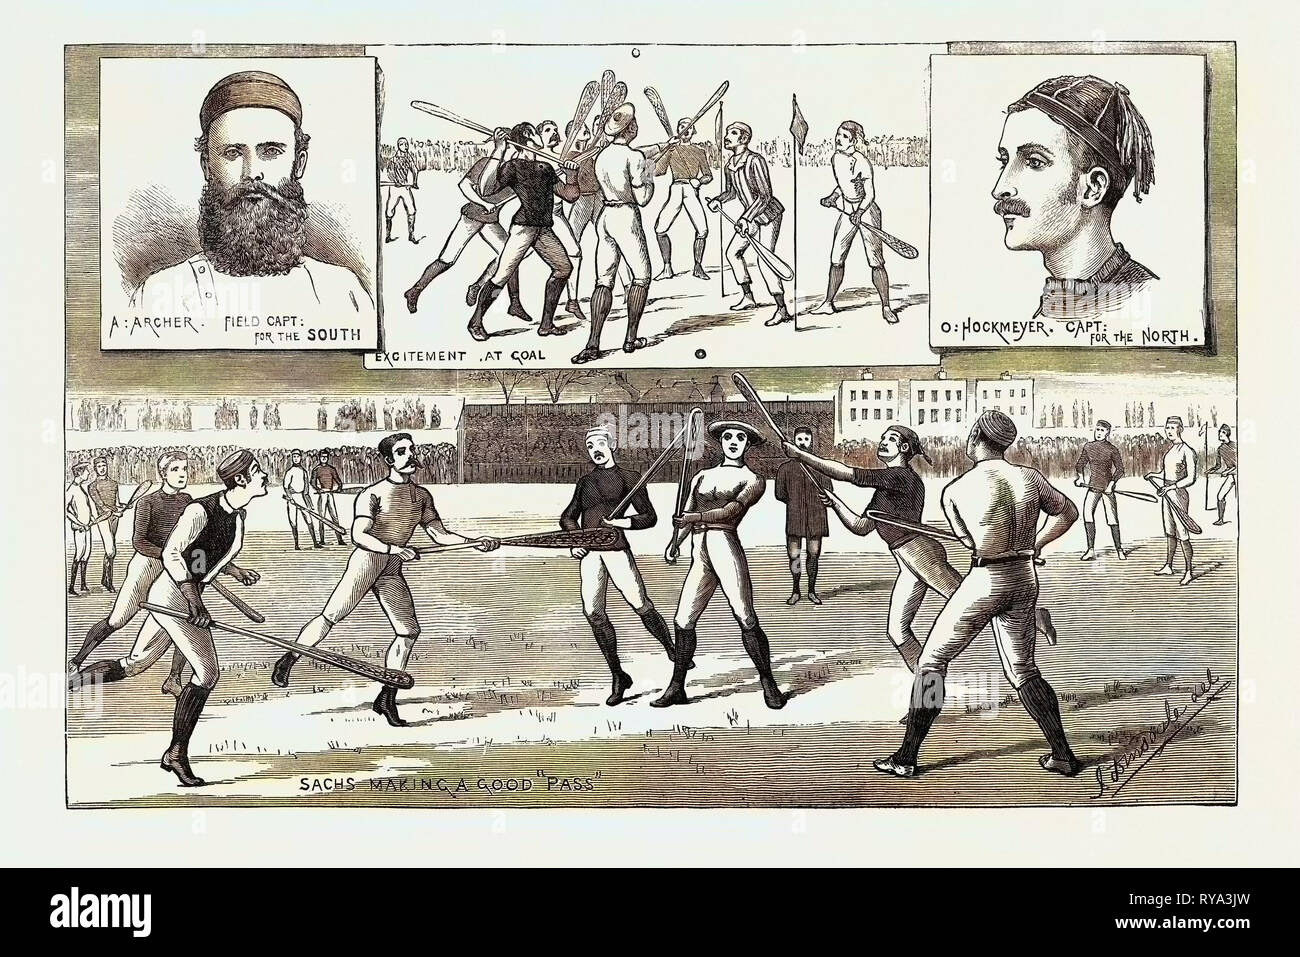 La Crosse Match, Played Last Saturday at Kennington Oval, by North of England against South, 1883 - Stock Image